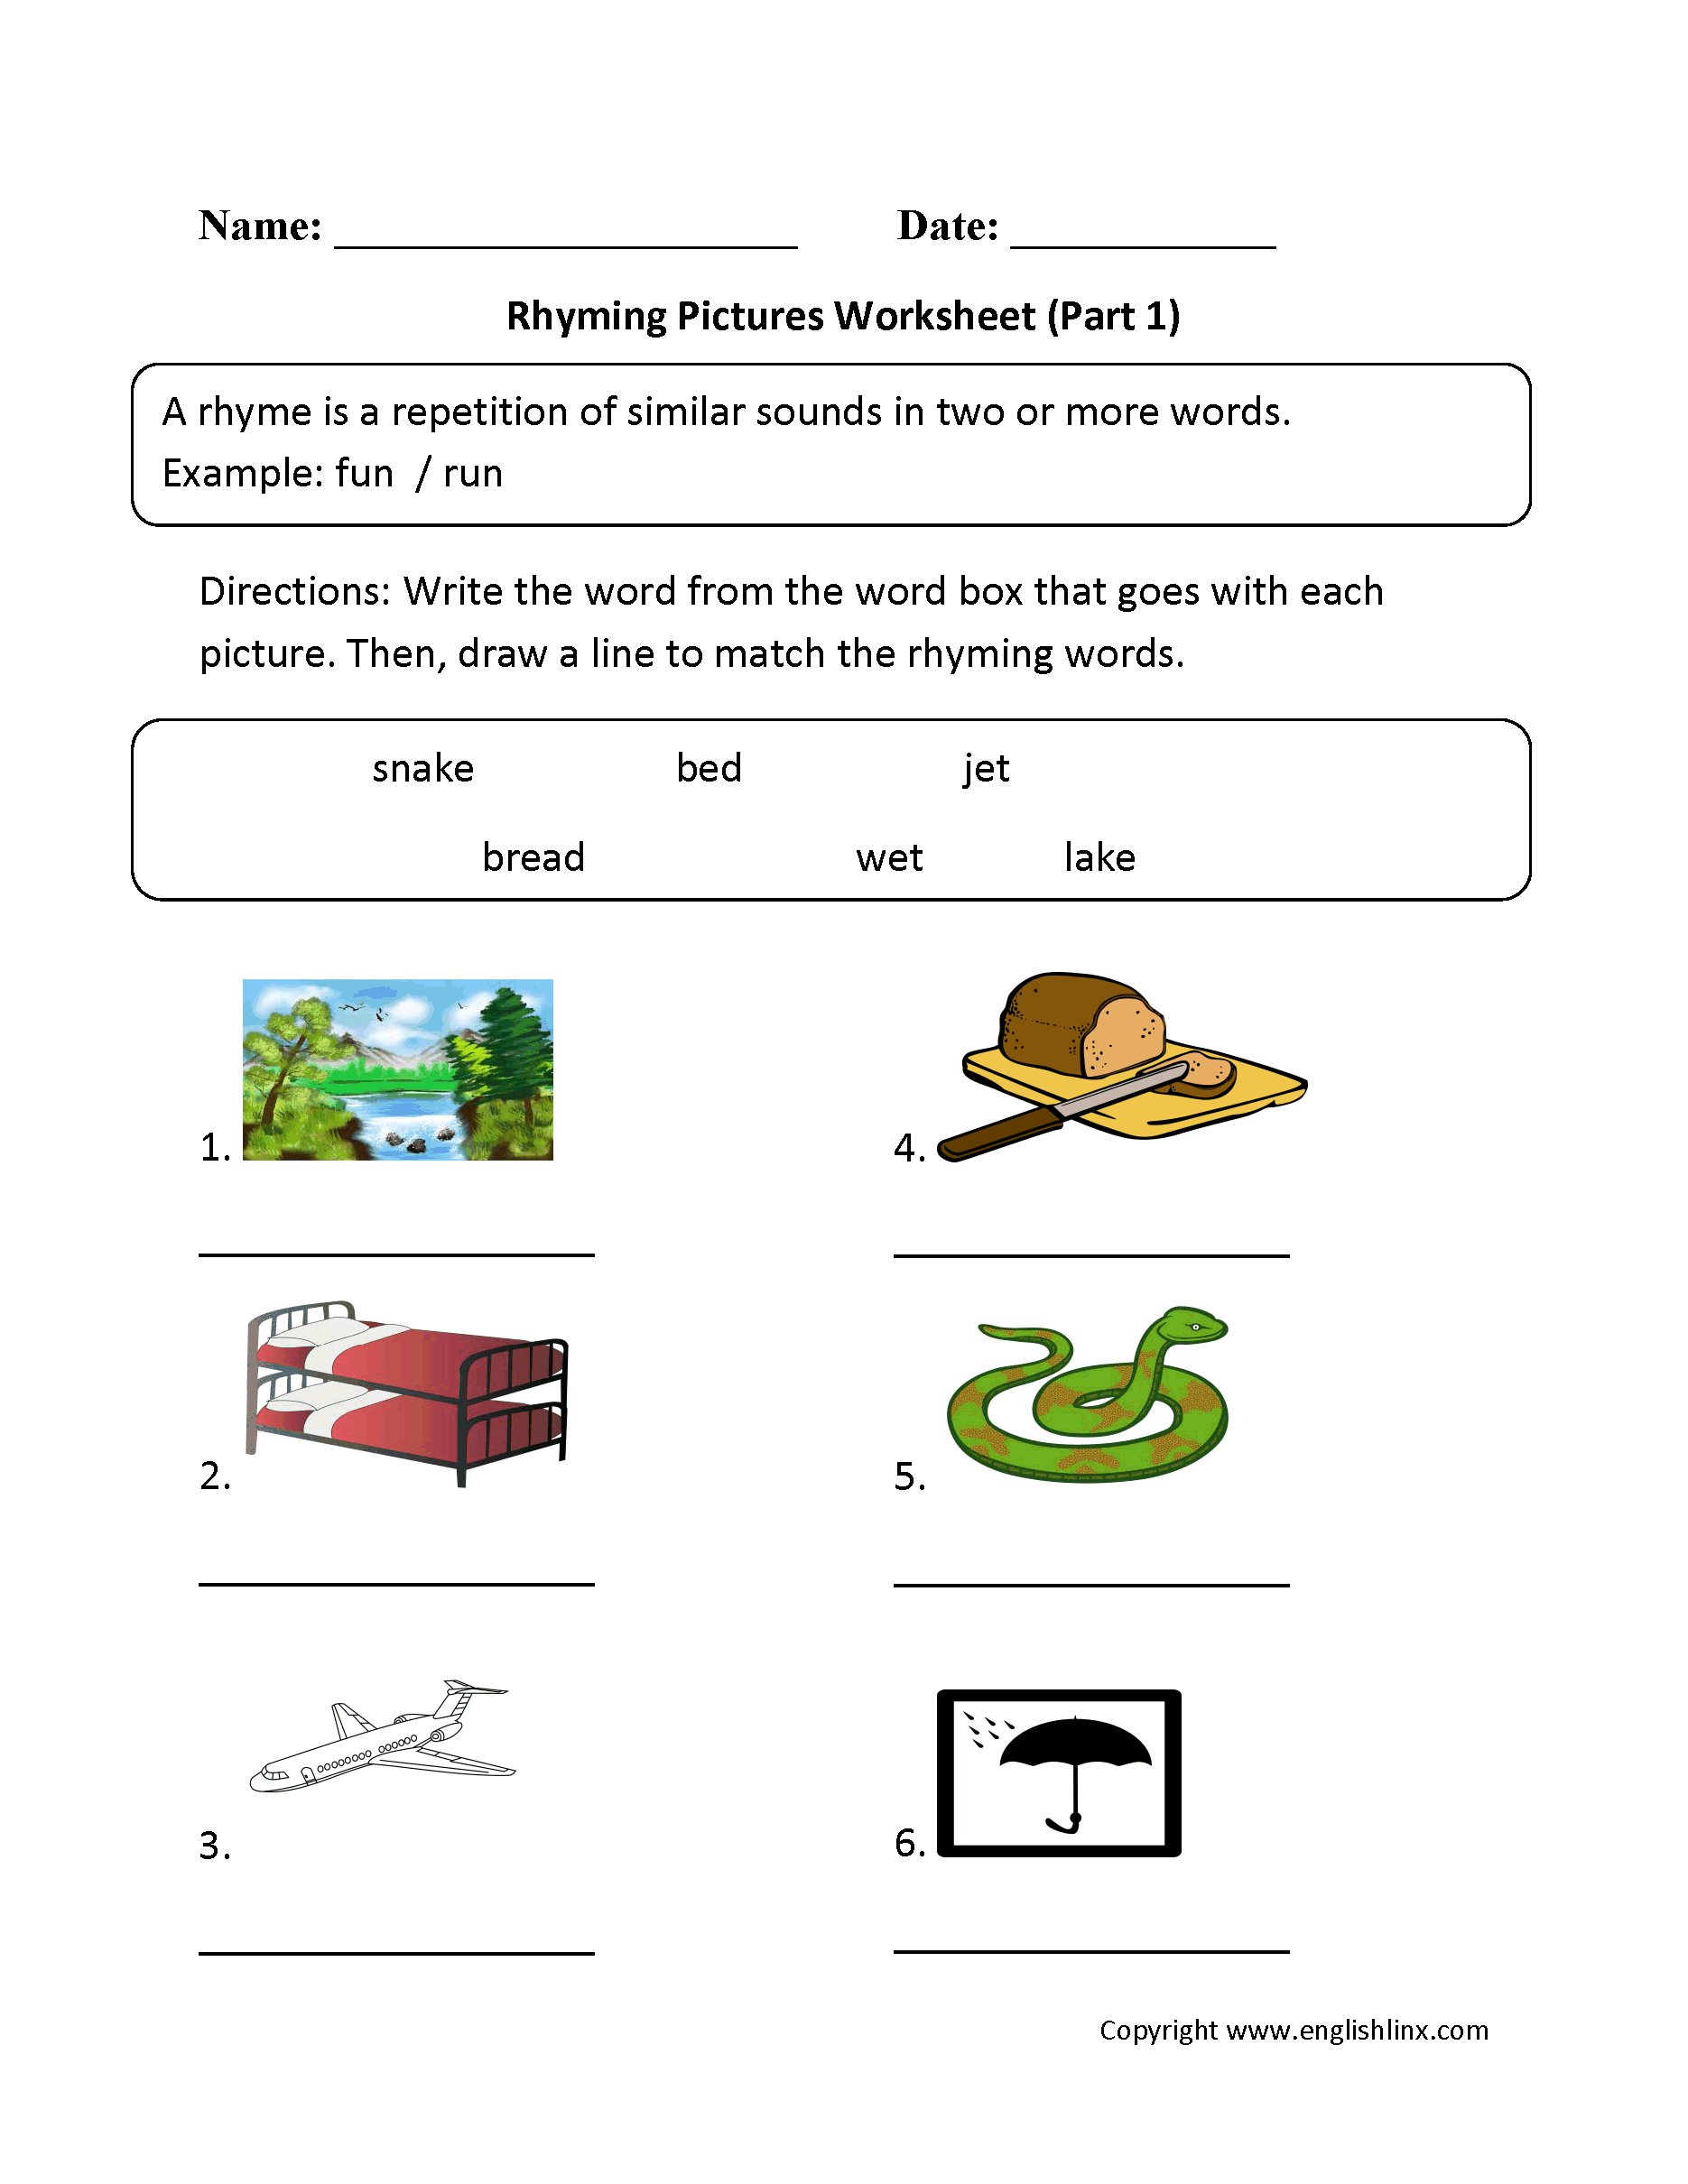 worksheet Worksheet Rhyming Words englishlinx com rhyming worksheets pictures worksheets